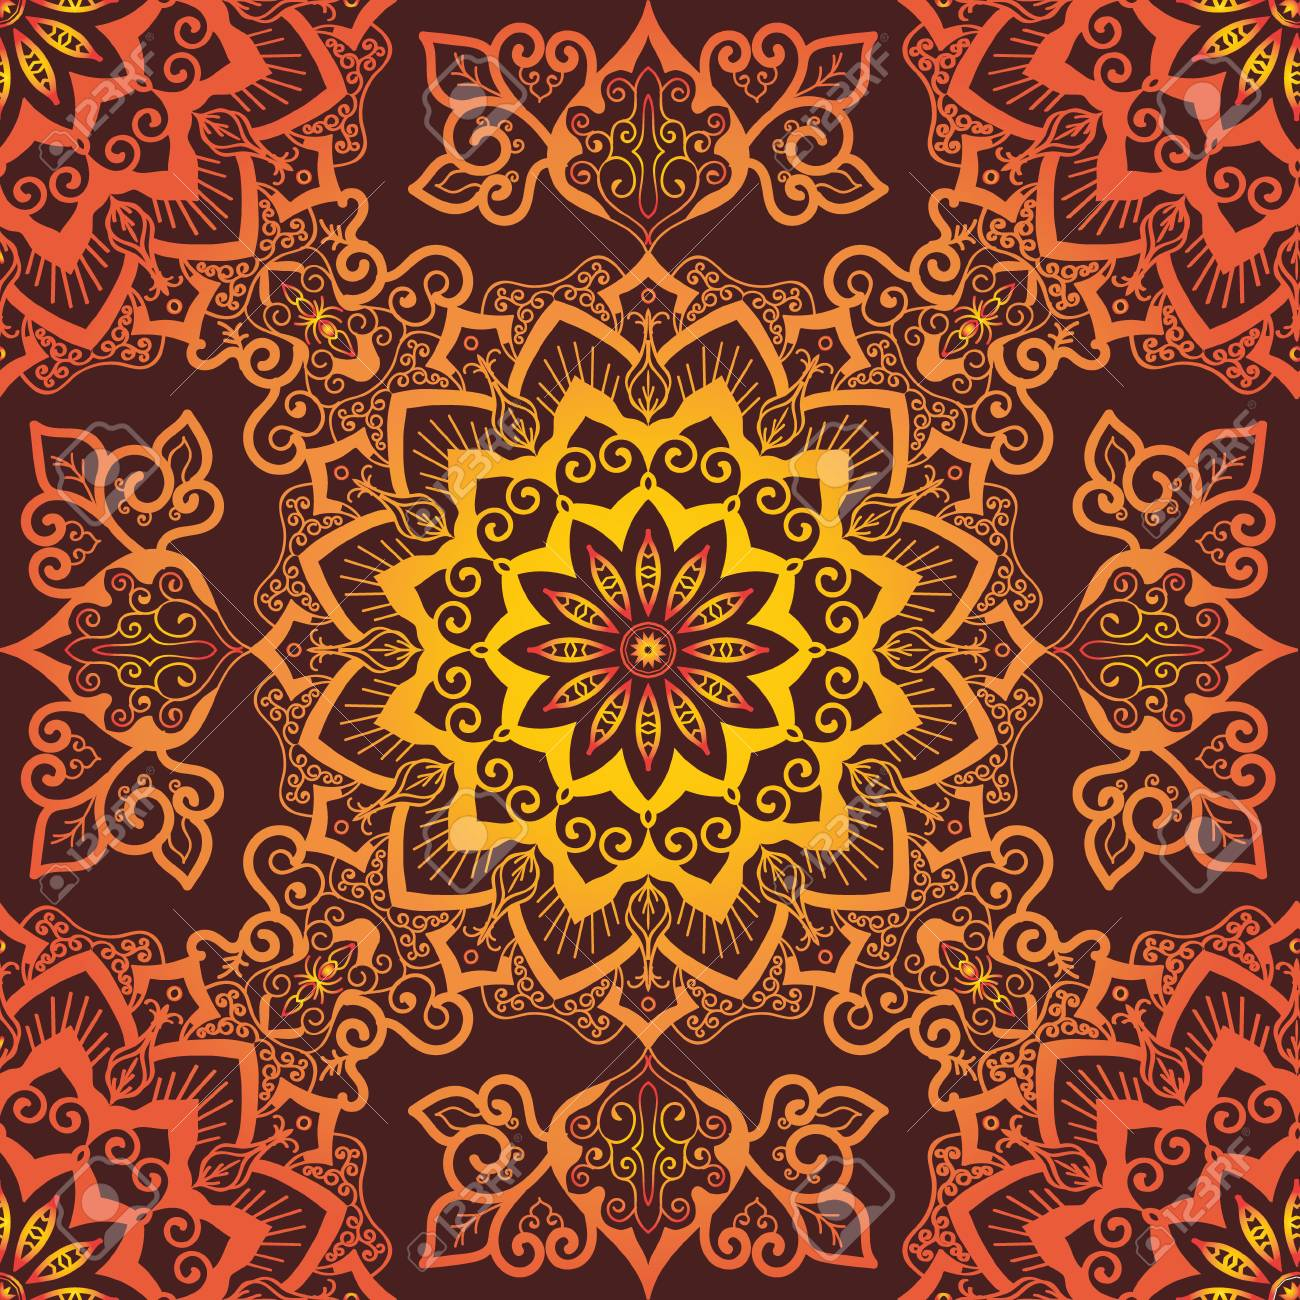 orange mandala pattern decorative round ornament on red background royalty free cliparts vectors and stock illustration image 110355205 orange mandala pattern decorative round ornament on red background